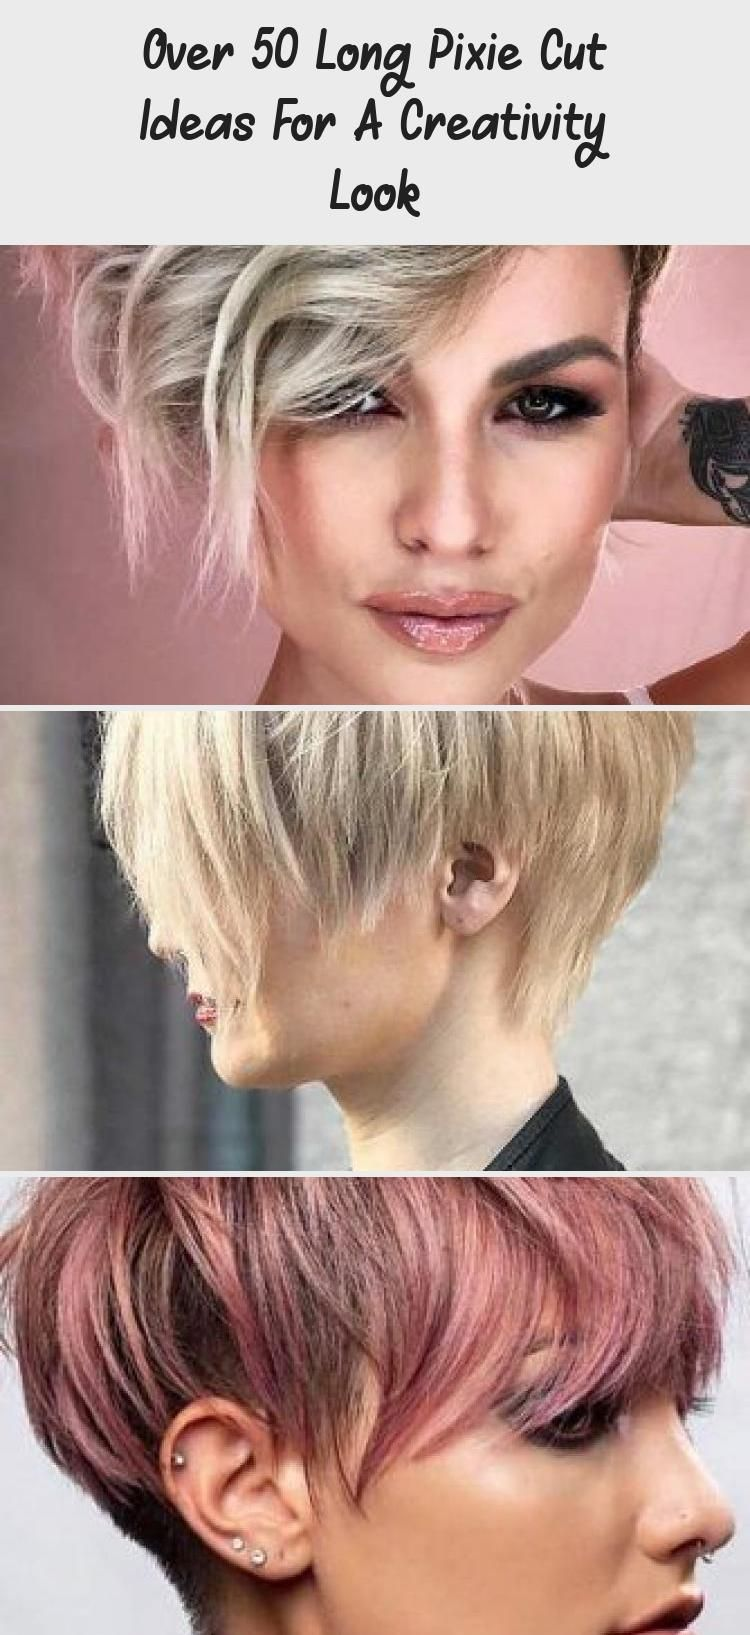 Over 50 Long Pixie Cut Ideas For A Creativity Look